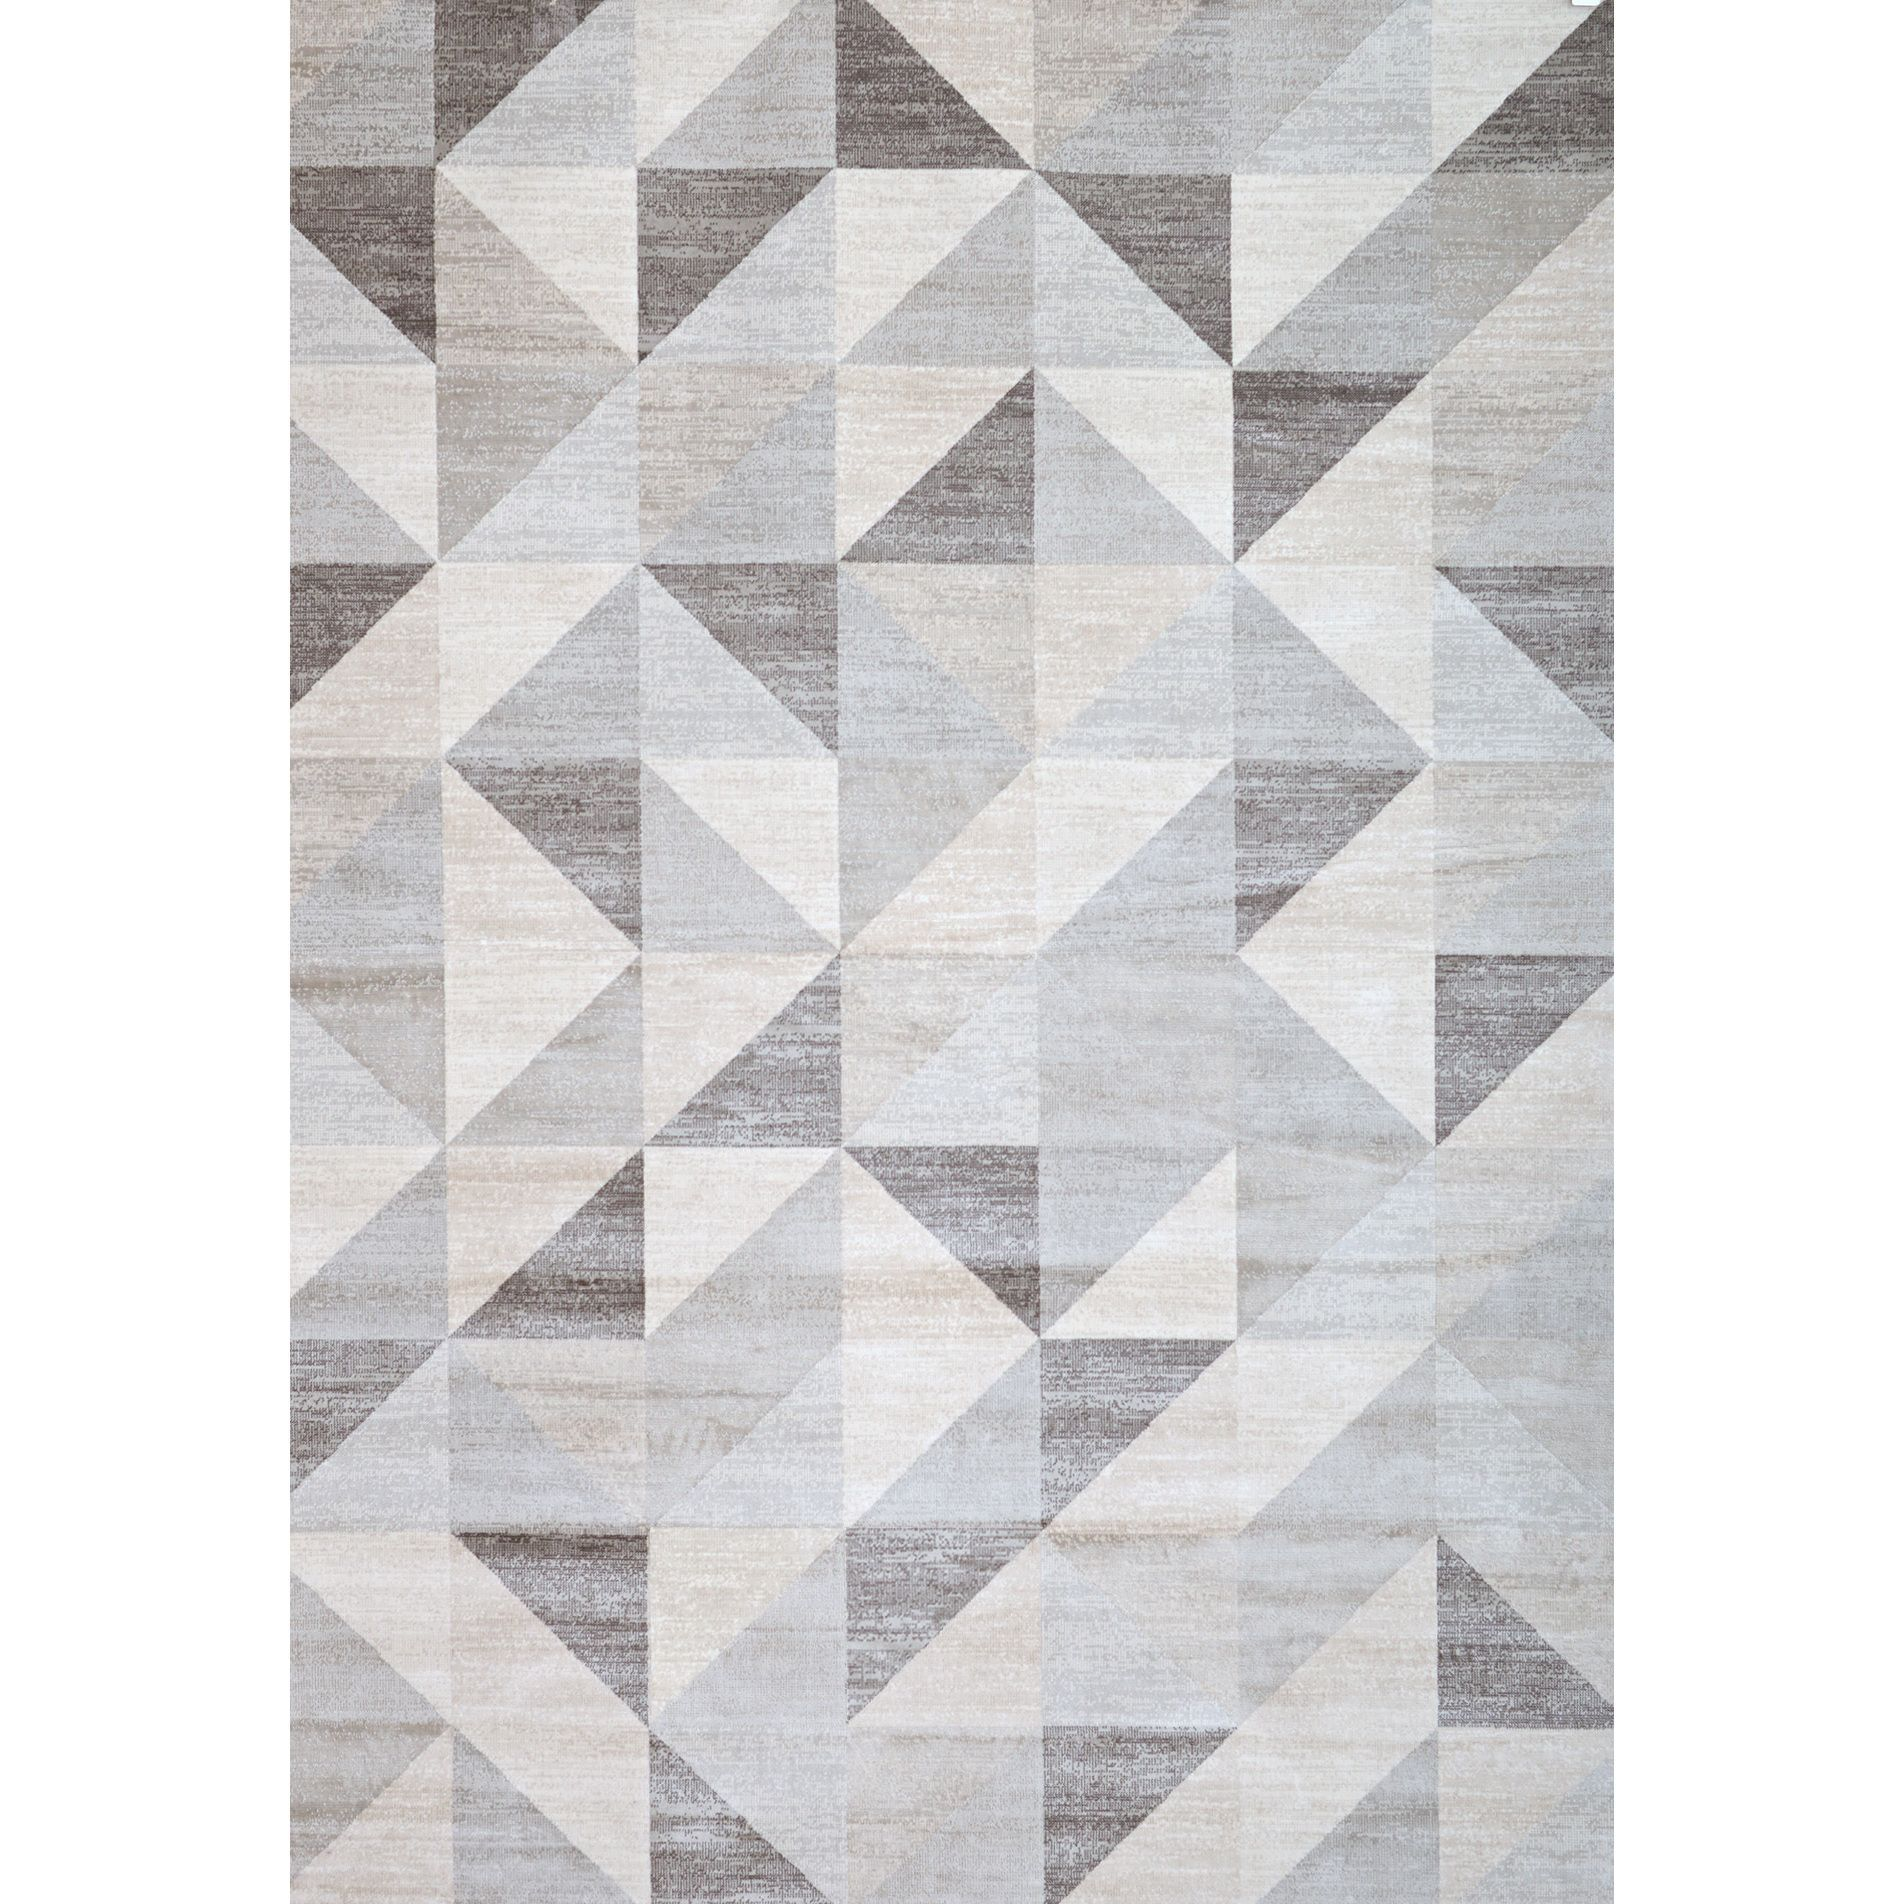 Overstock Com Online Shopping Bedding Furniture Electronics Jewelry Clothing More Patterned Carpet White Area Rug Textured Carpet